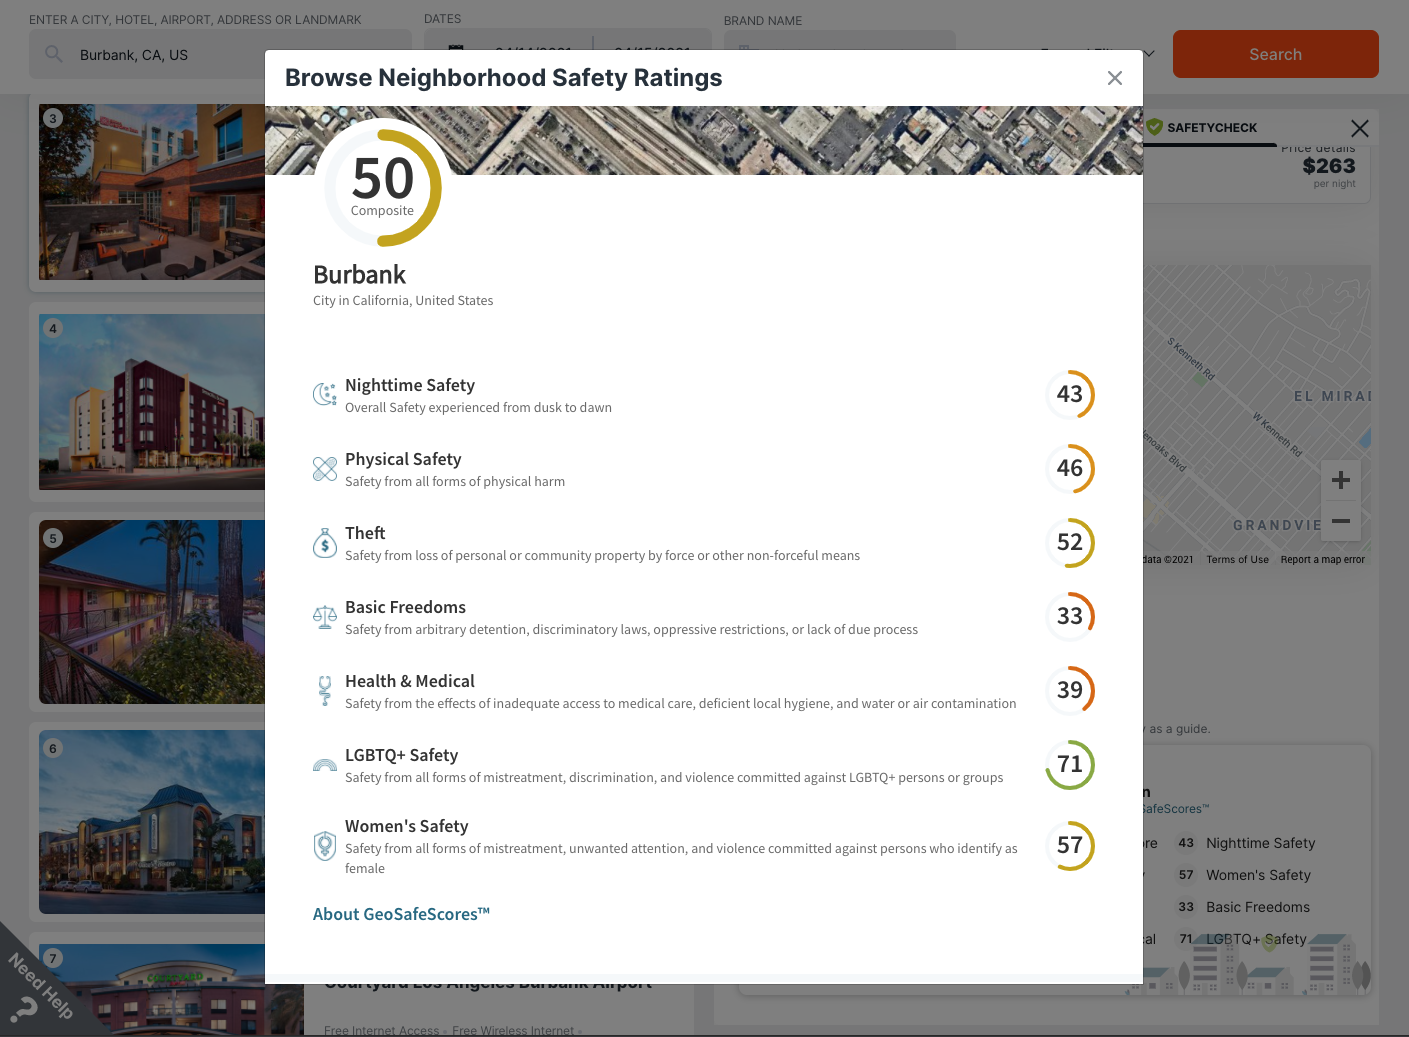 Travel SafetyCheck detail showing neighborhood scores for LGBTQ+ and women's safety, nighttime and physical safety, theft, basic freedoms and health & medical scores.